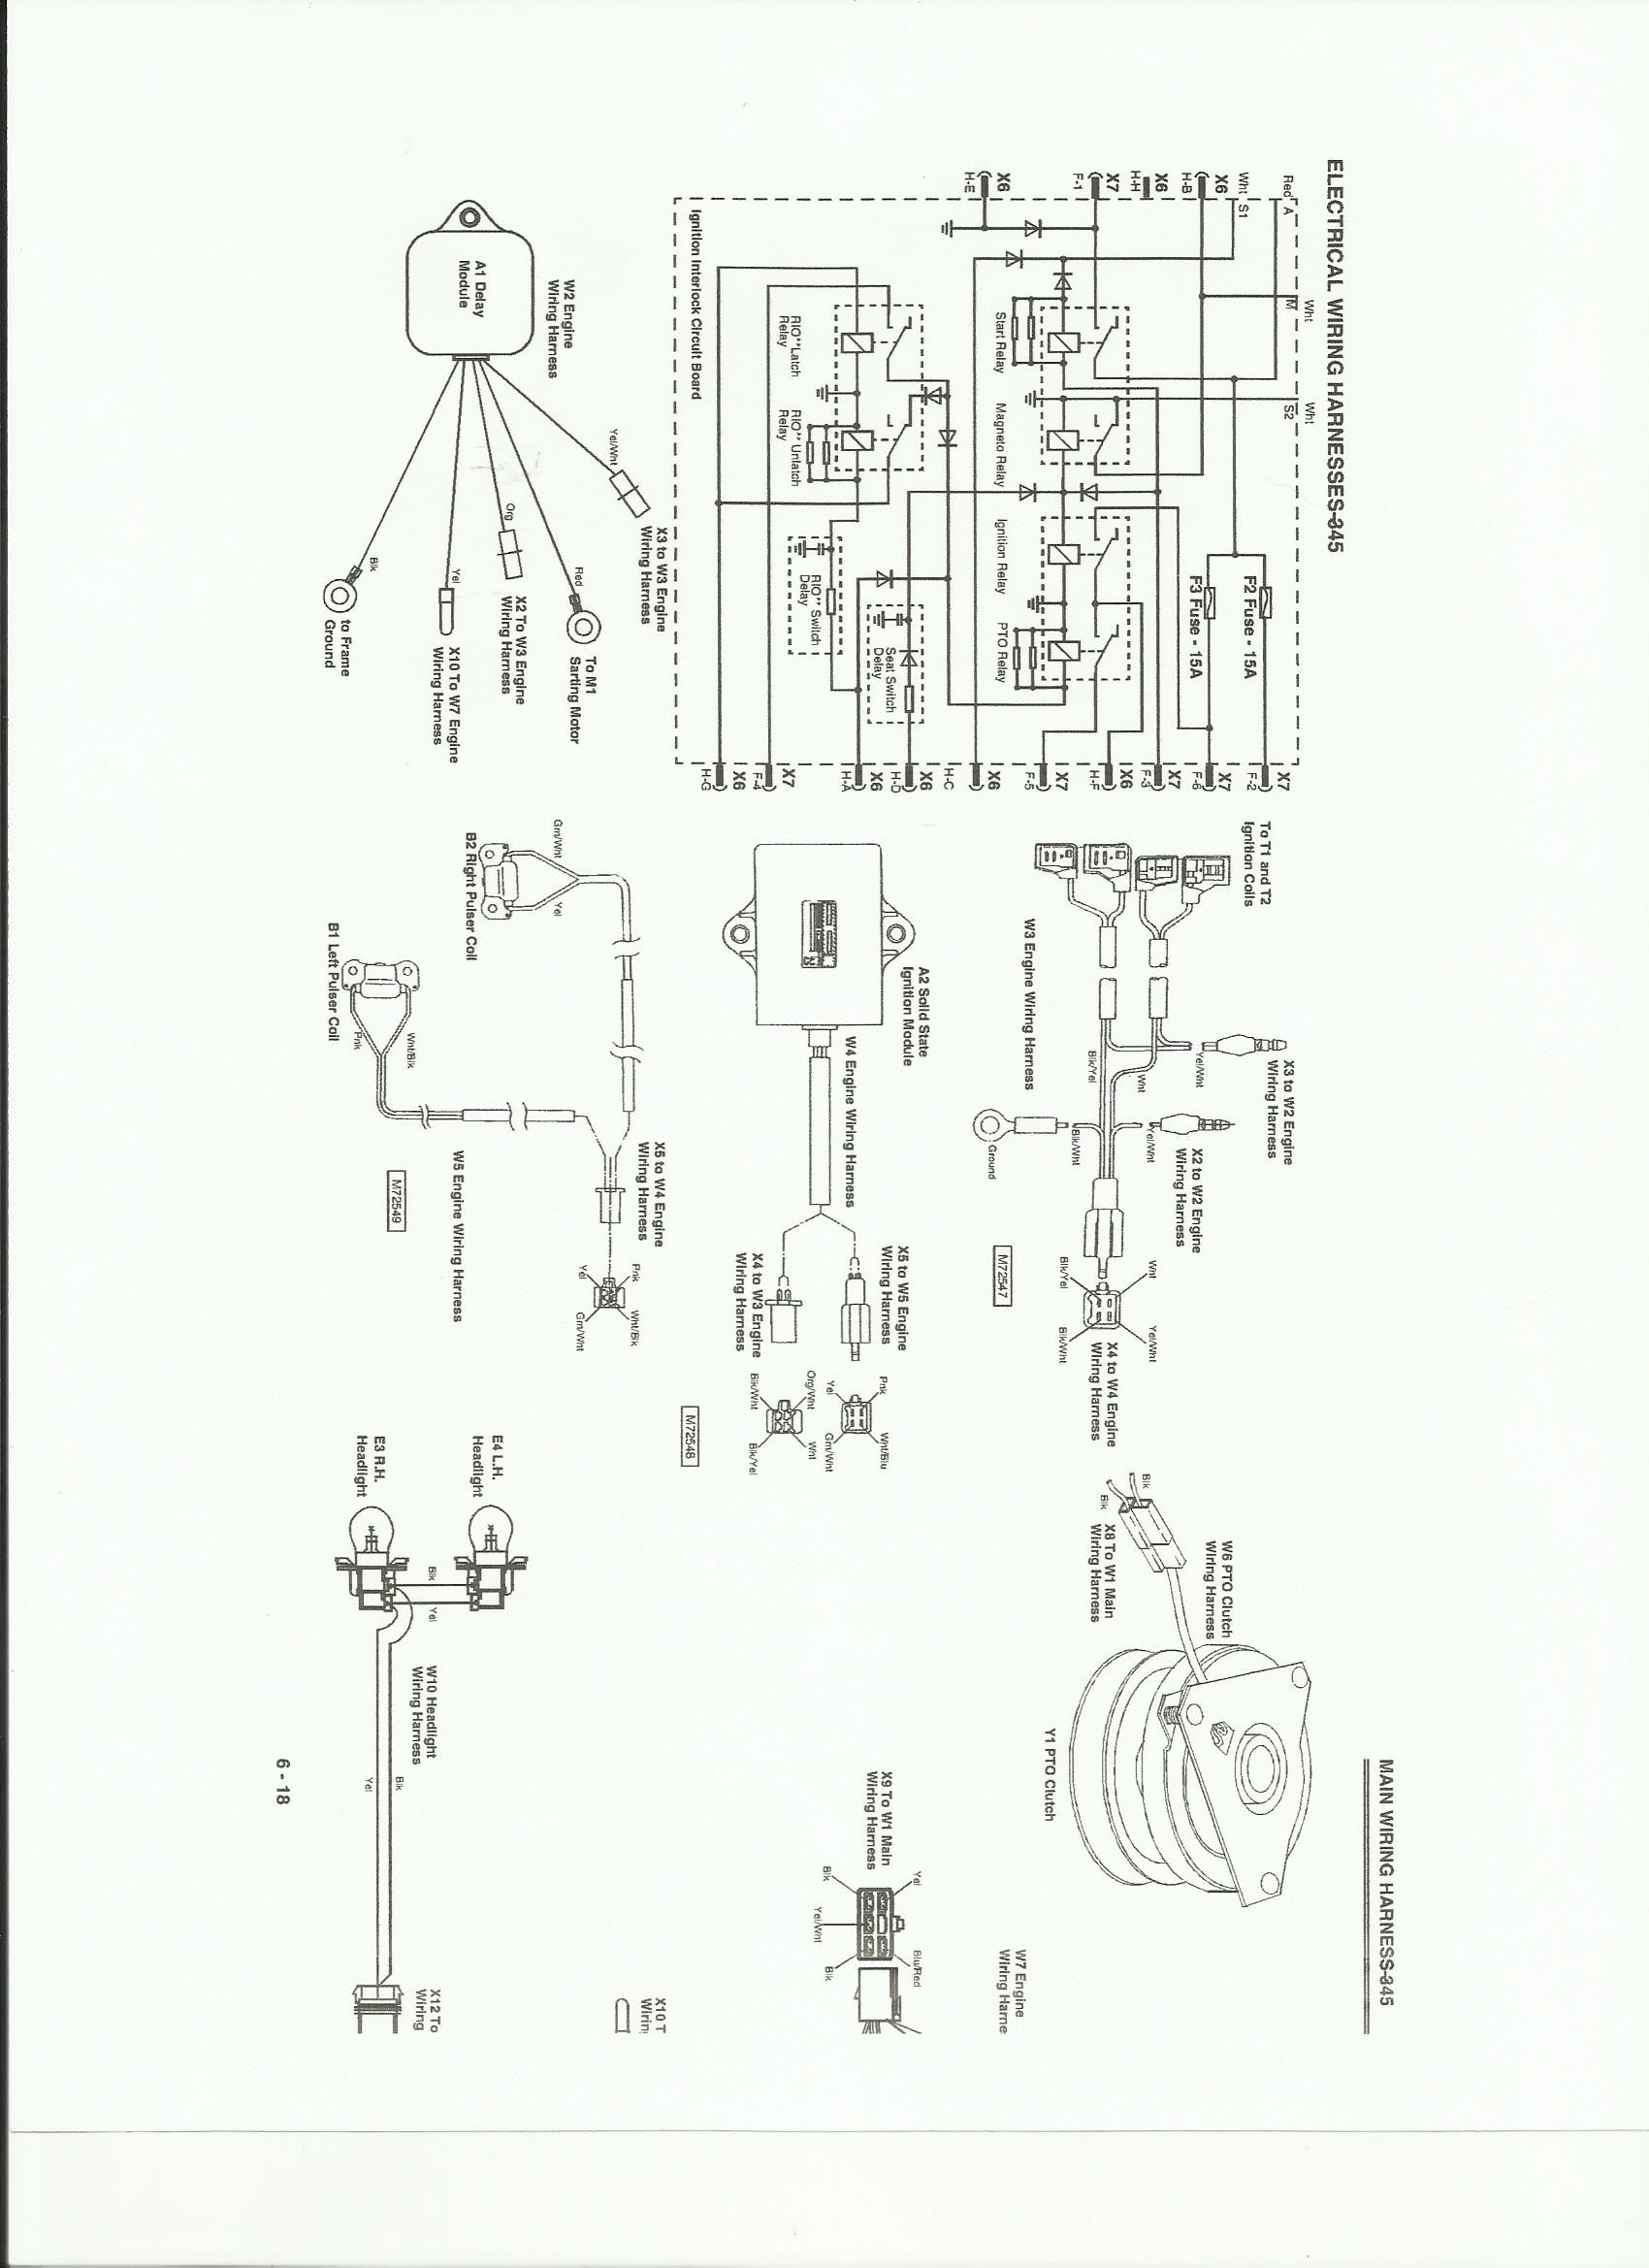 A Wiring Diagram for A 345 Jd Tractor Need A 345 Wiring Diagram Pdf Please Of A Wiring Diagram for A 345 Jd Tractor